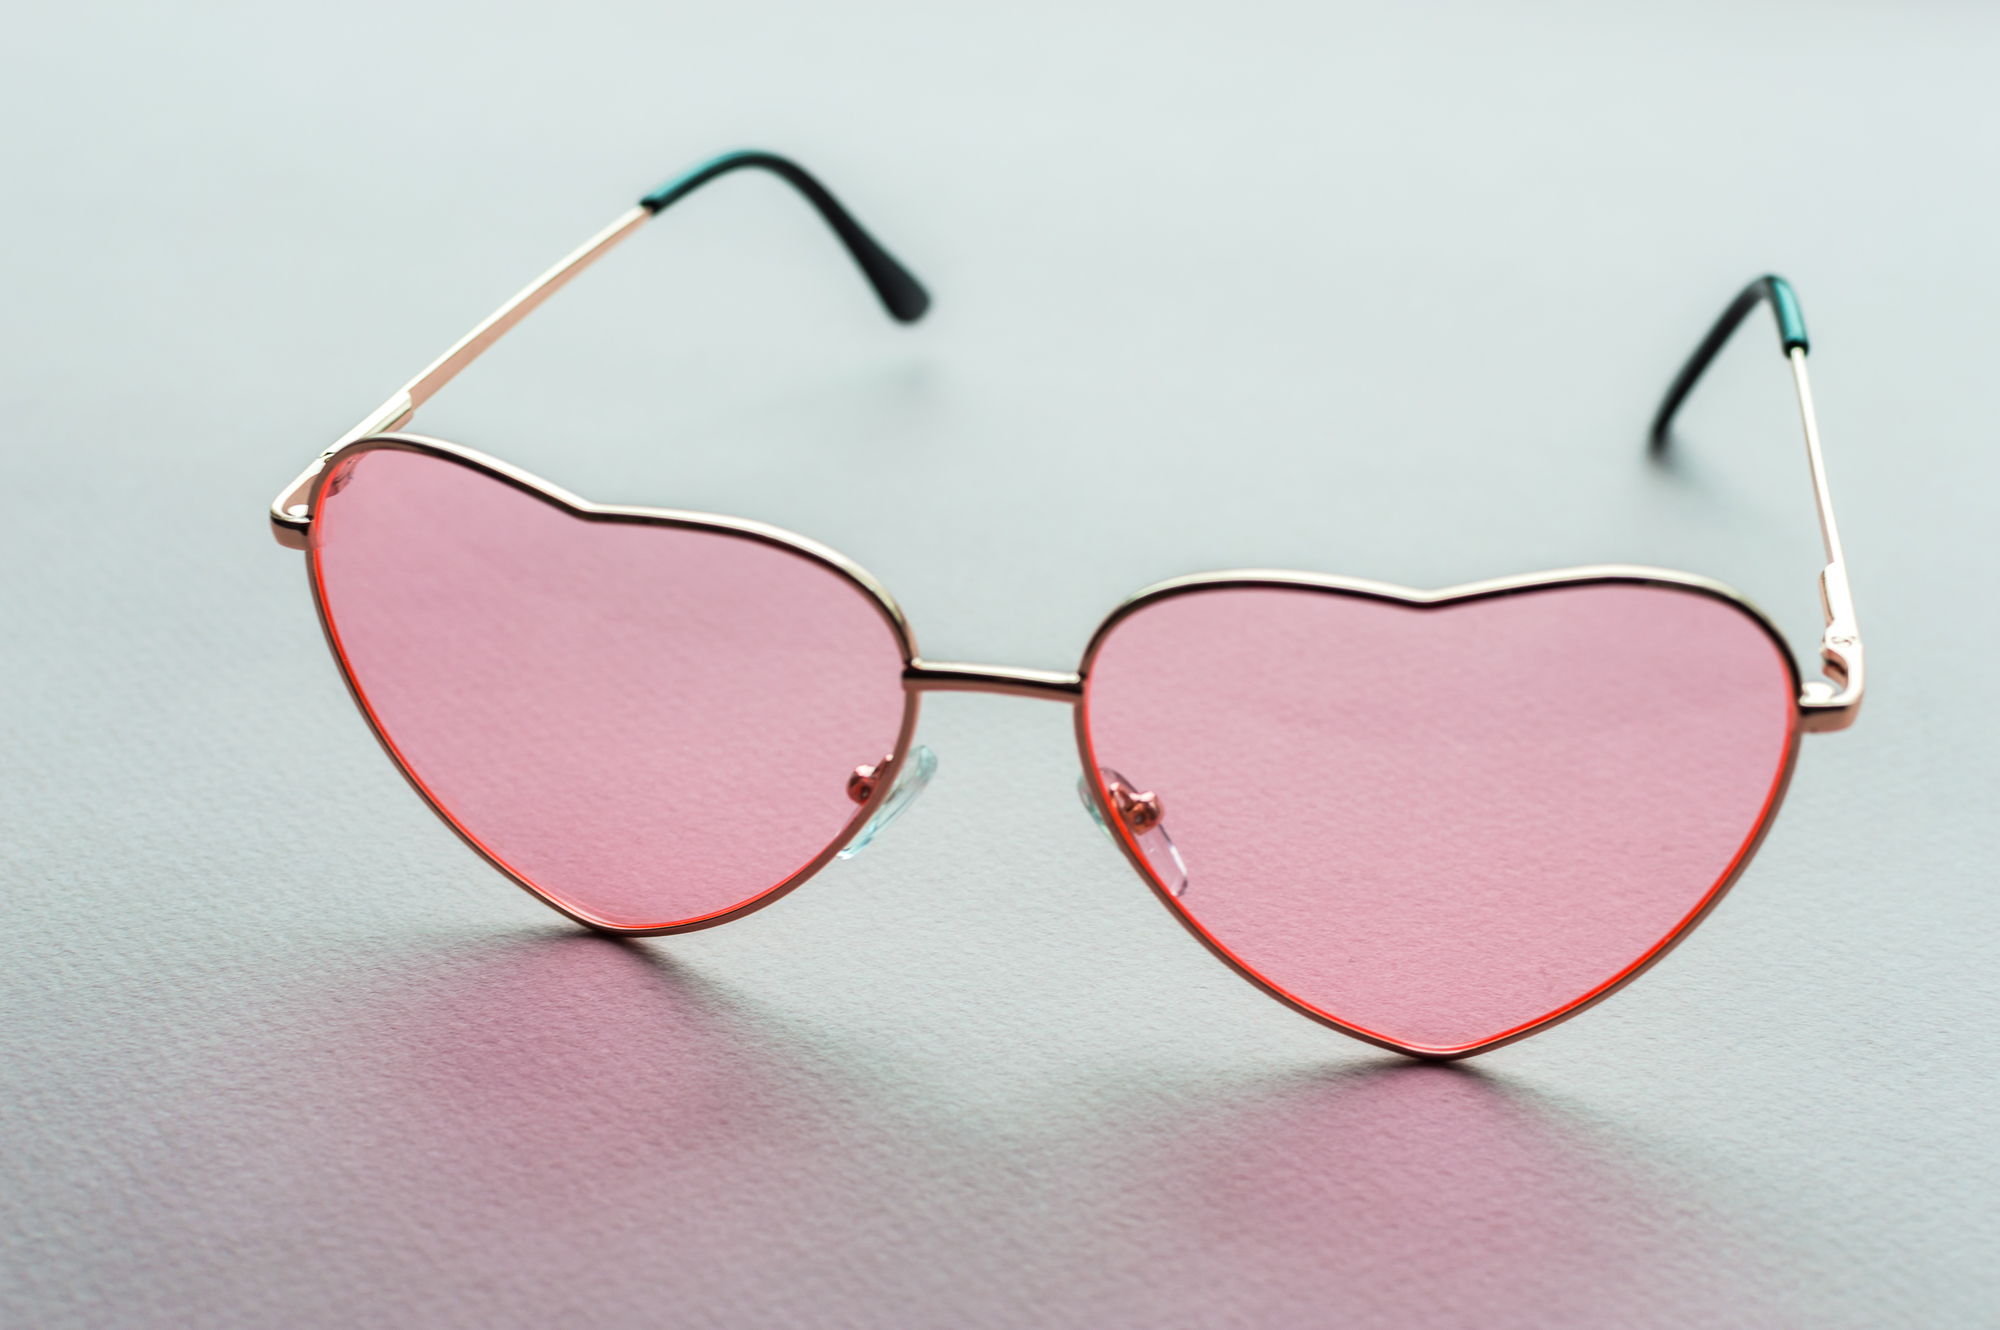 rose-colored glasses in the shape of a heart